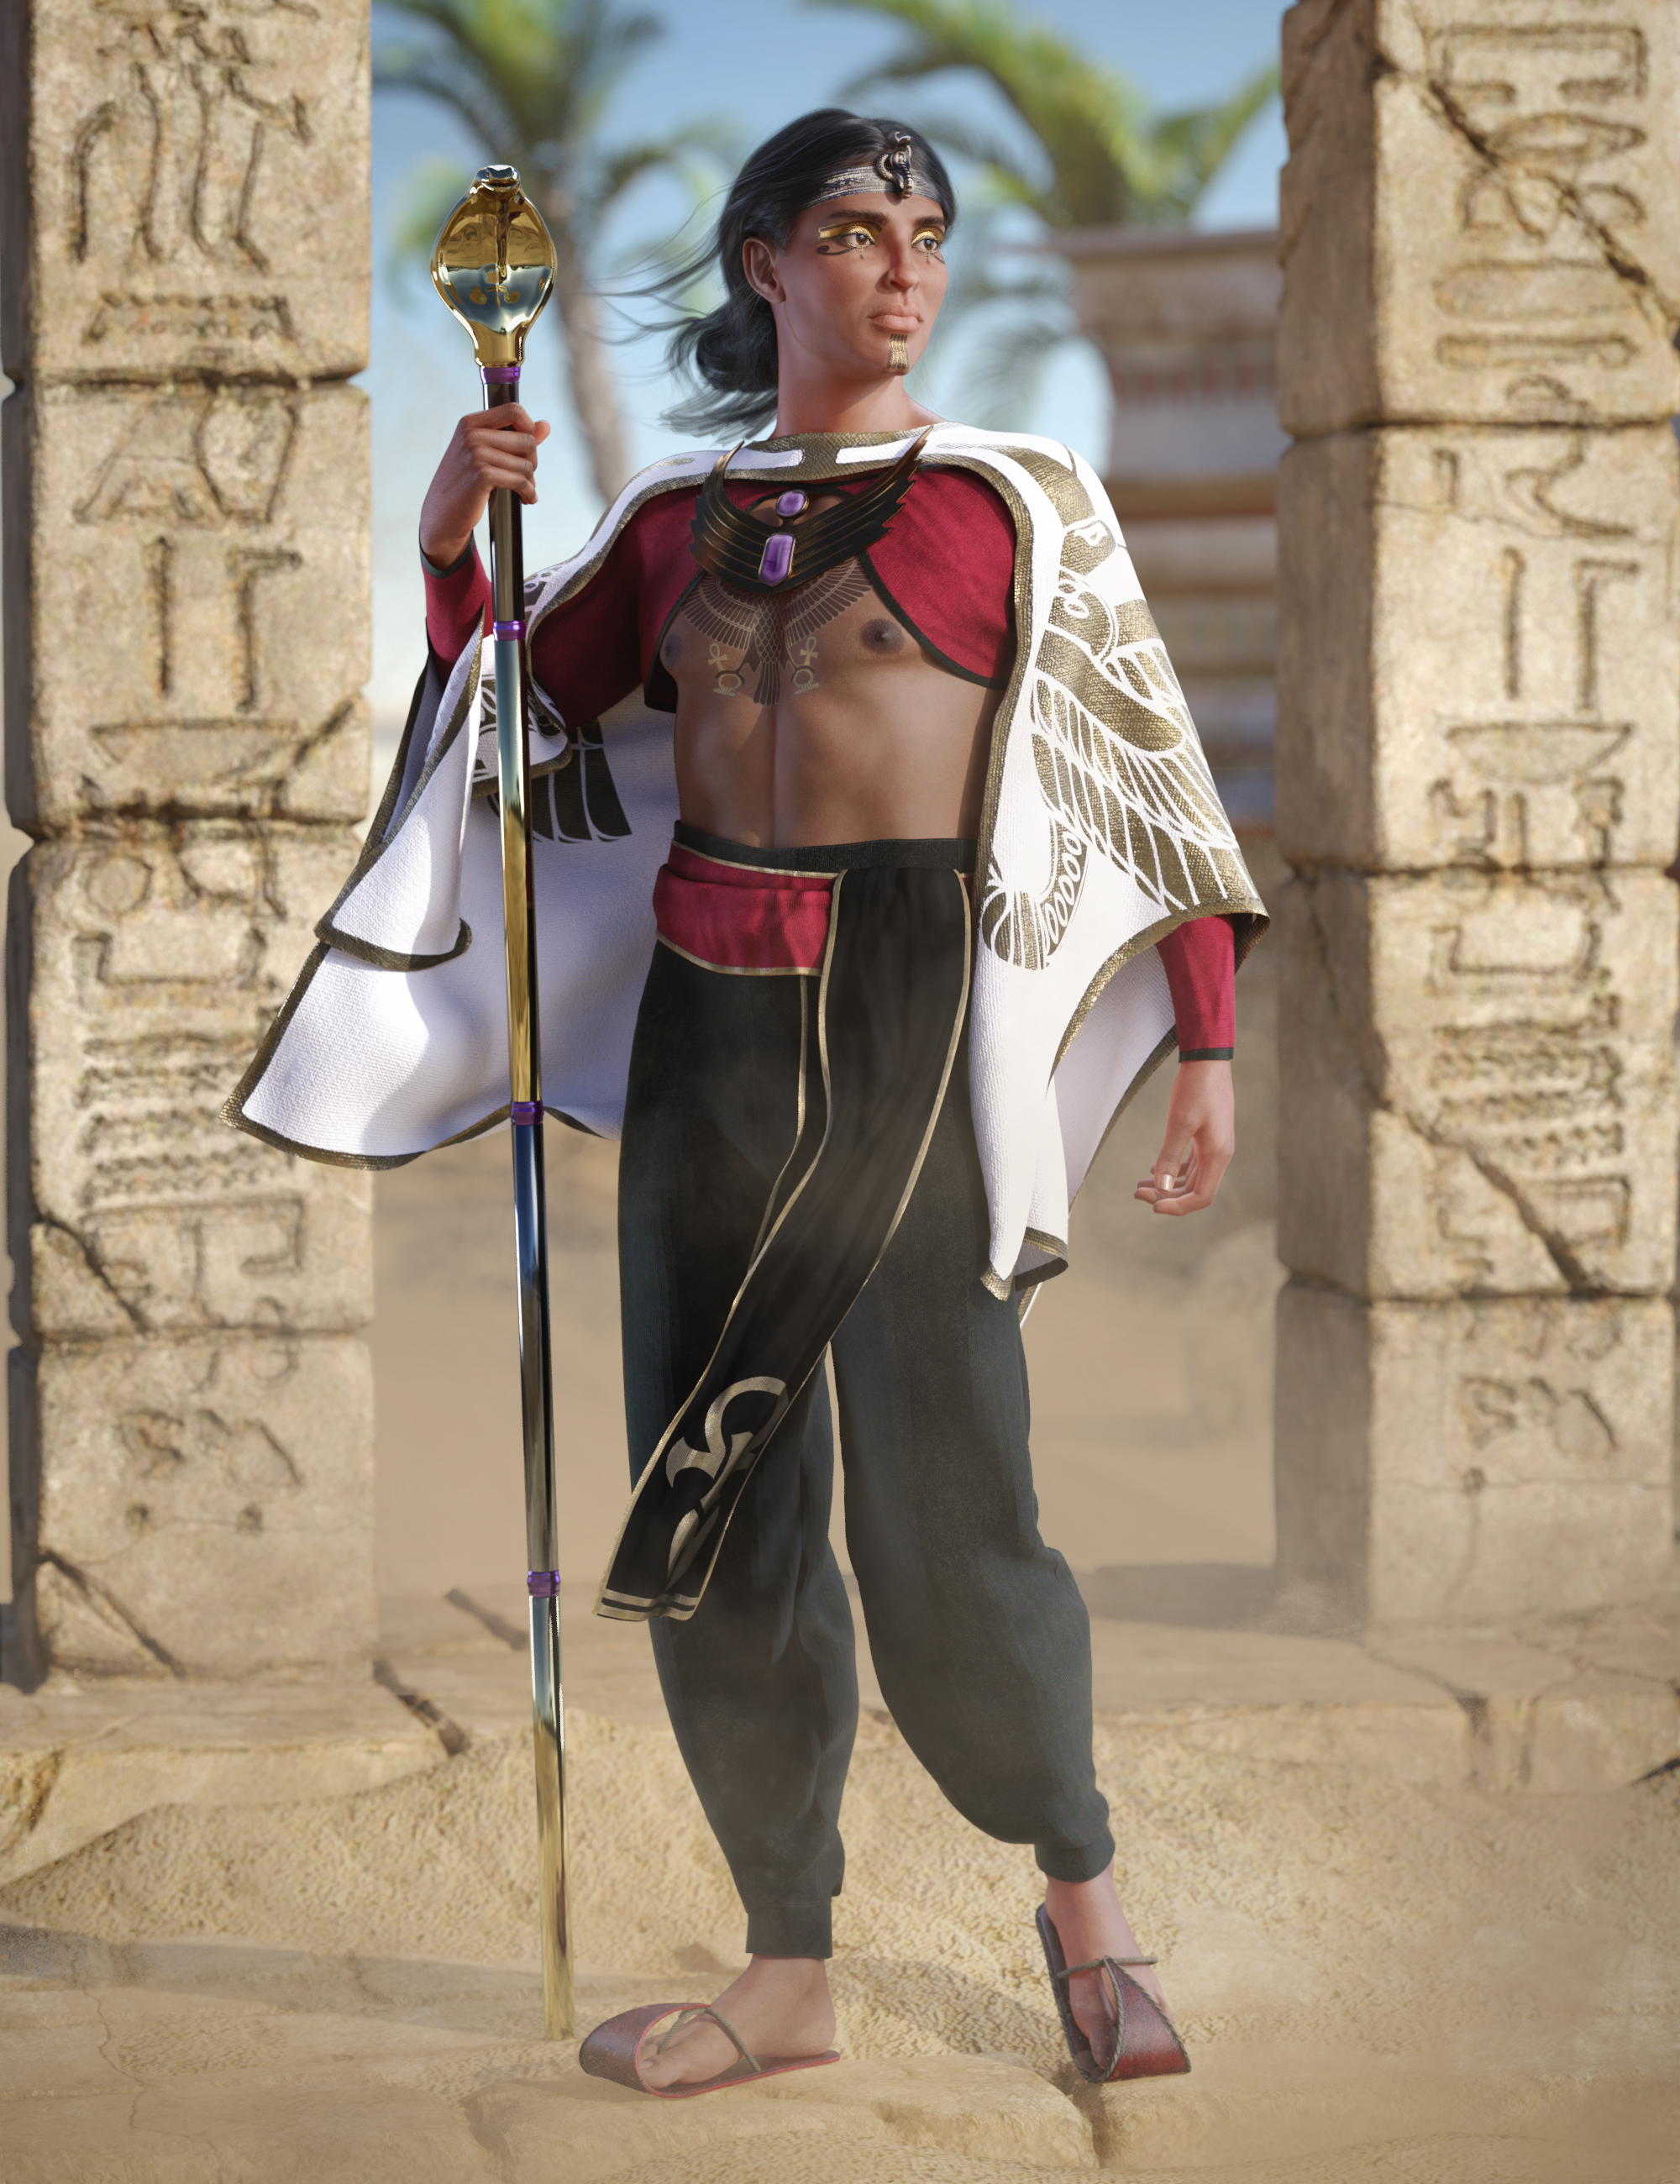 dForce Curse of Kings Outfit for Genesis 8 Males by: Barbara BrundonMoonscape GraphicsUmblefugly, 3D Models by Daz 3D